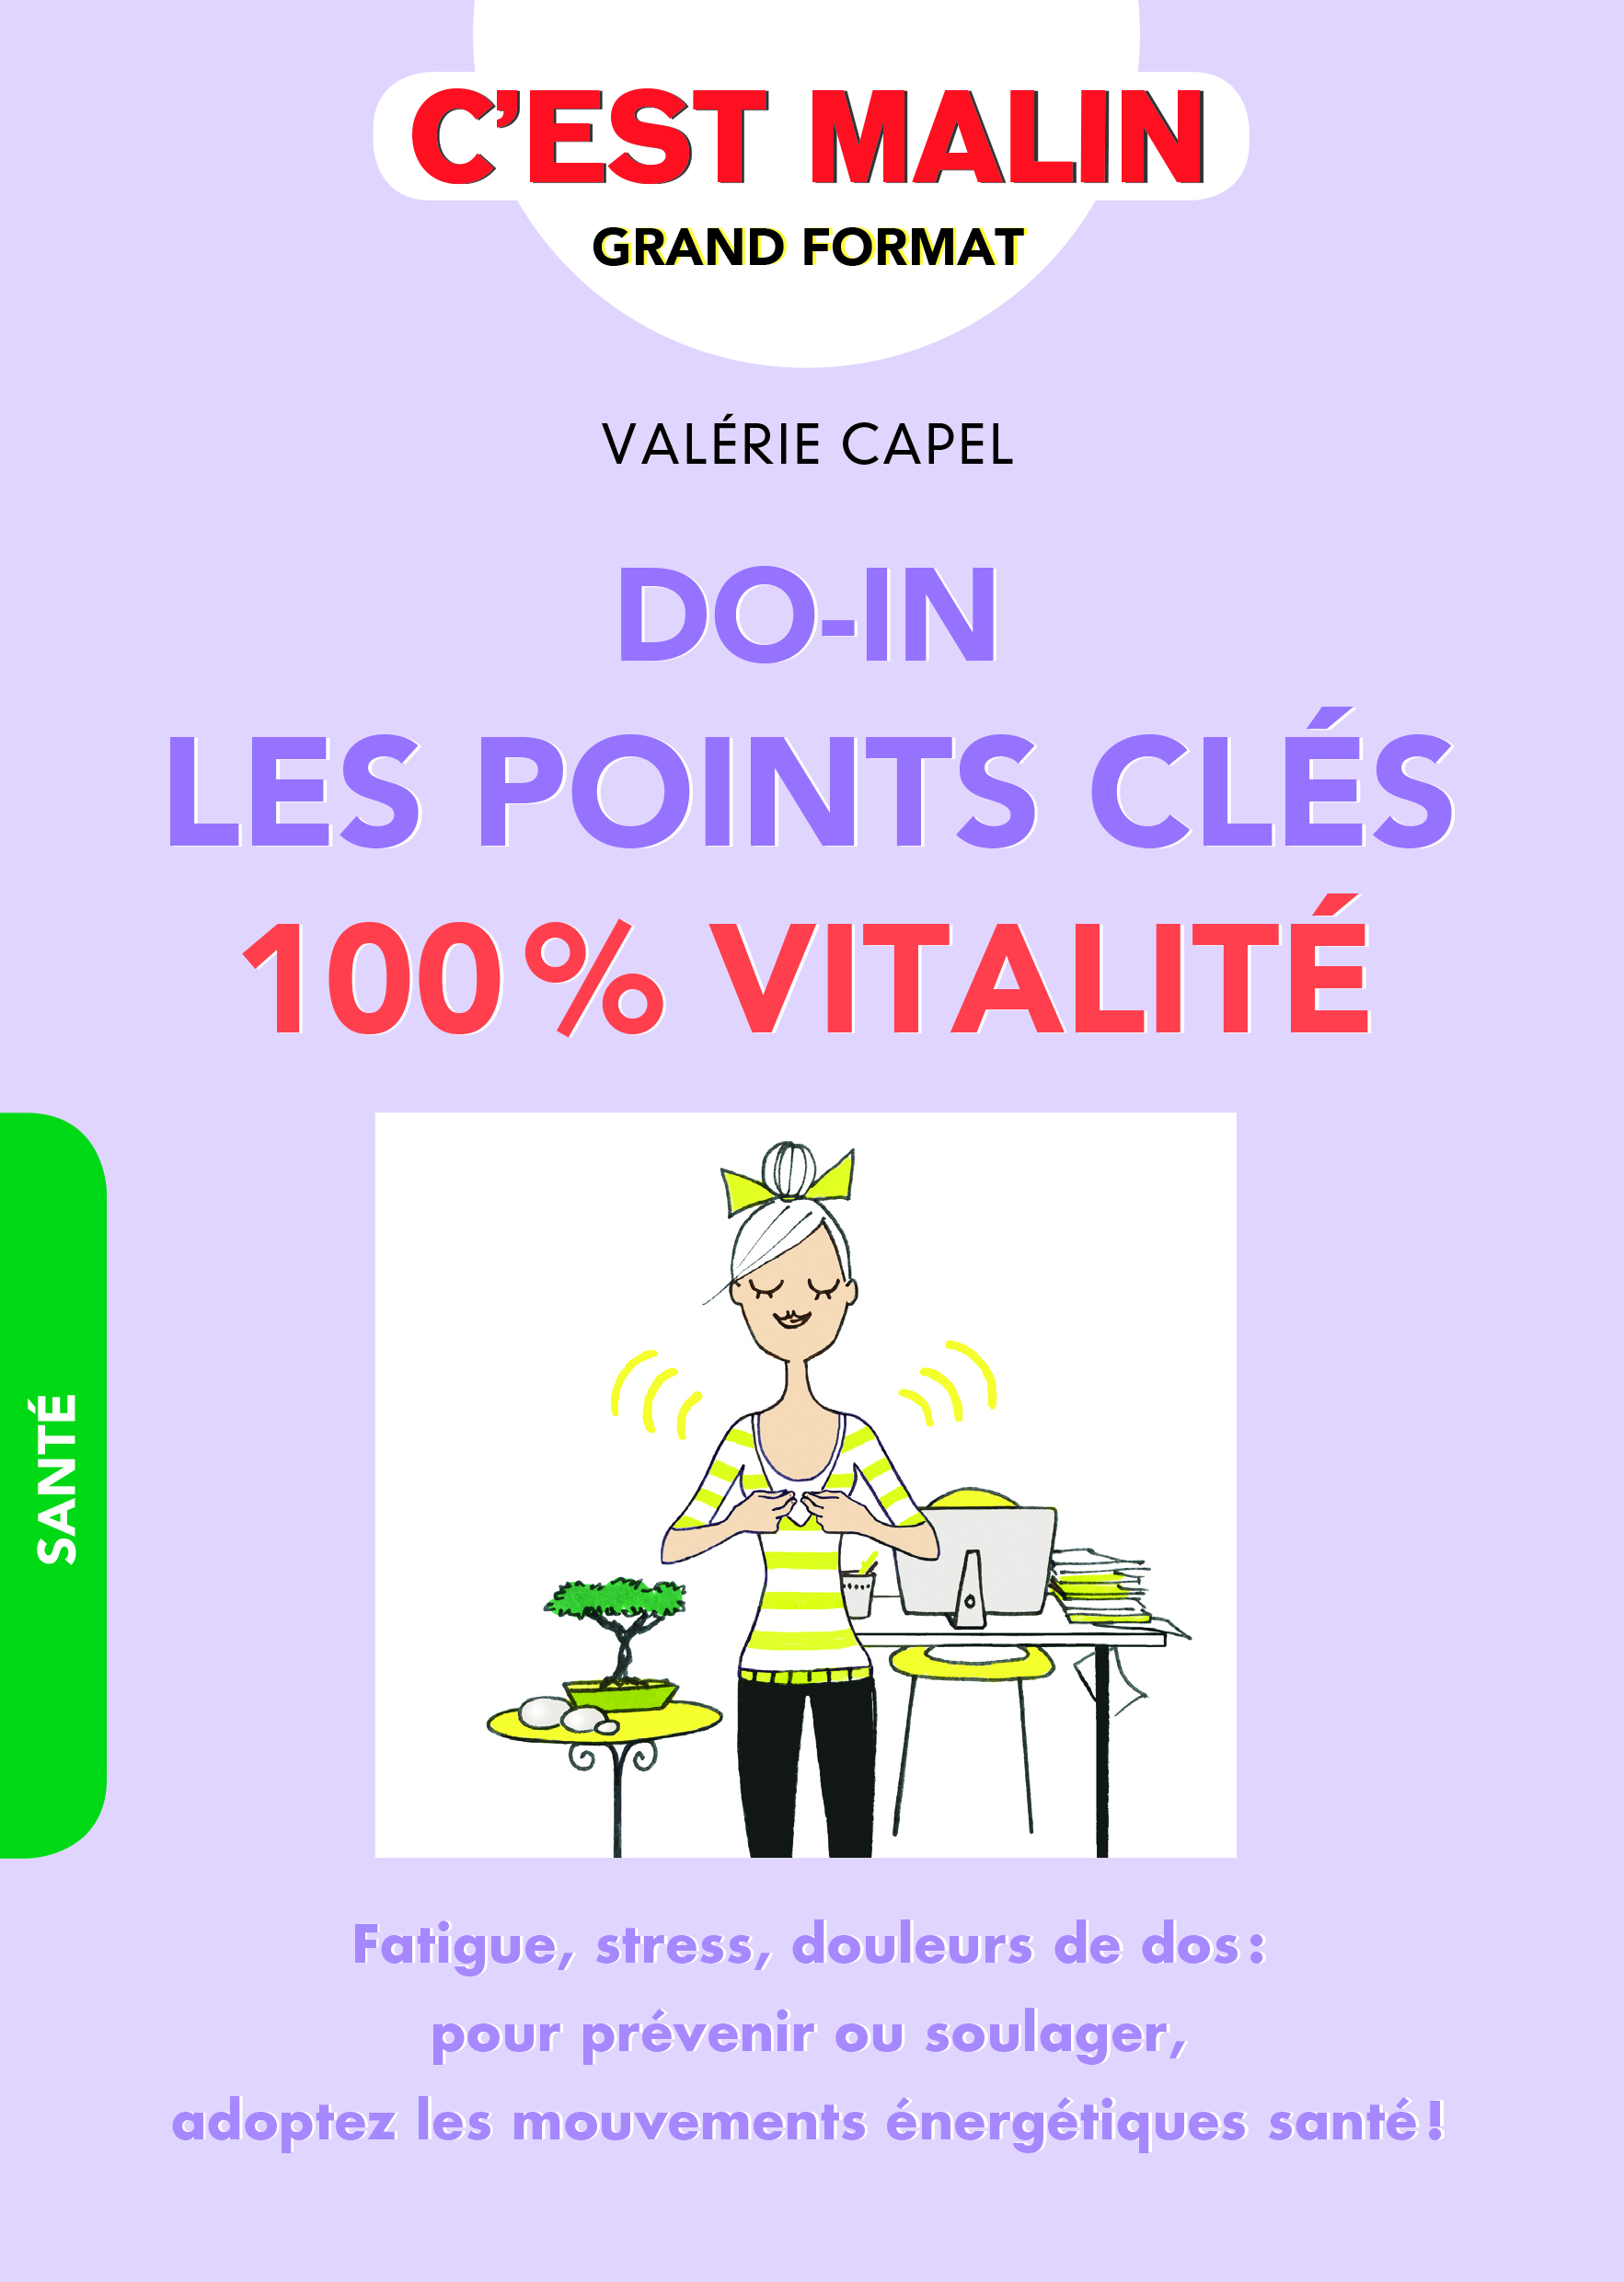 DO-IN, LES POINTS CLES 100% VITALITE